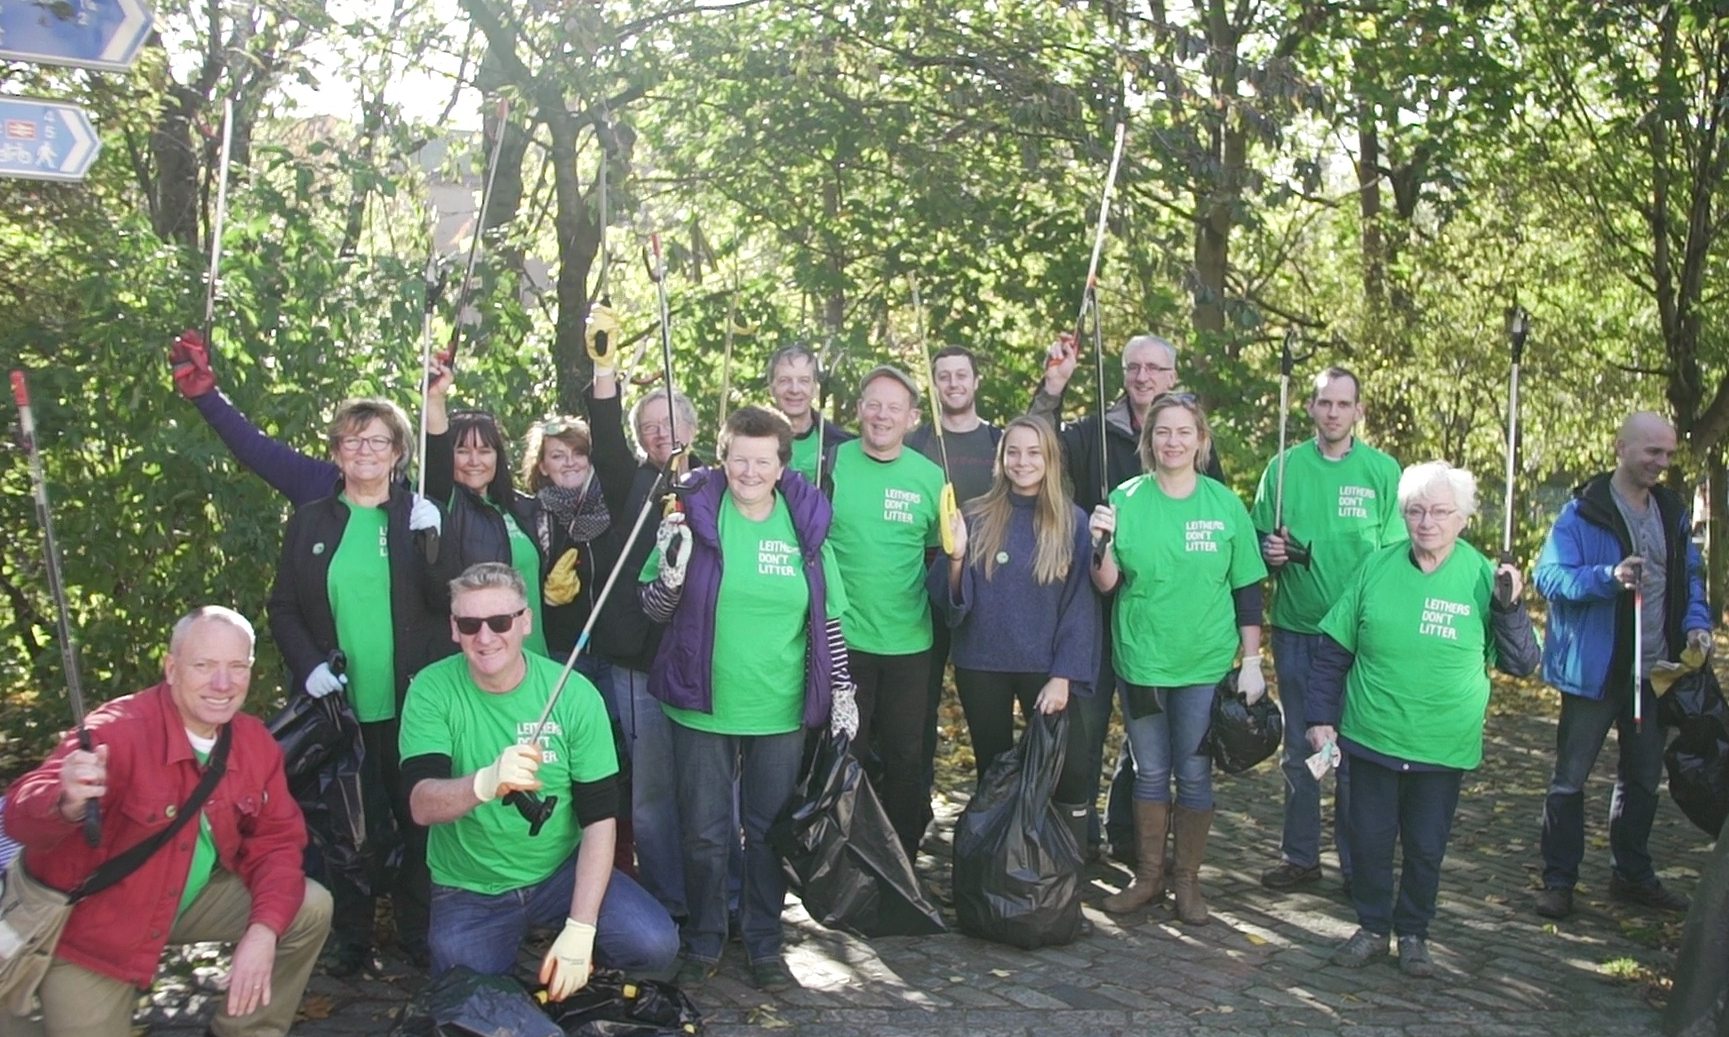 Take Action - Help us make Leith litter-free. Adopt your street, join our cleanups, report messy streets and spread the word.